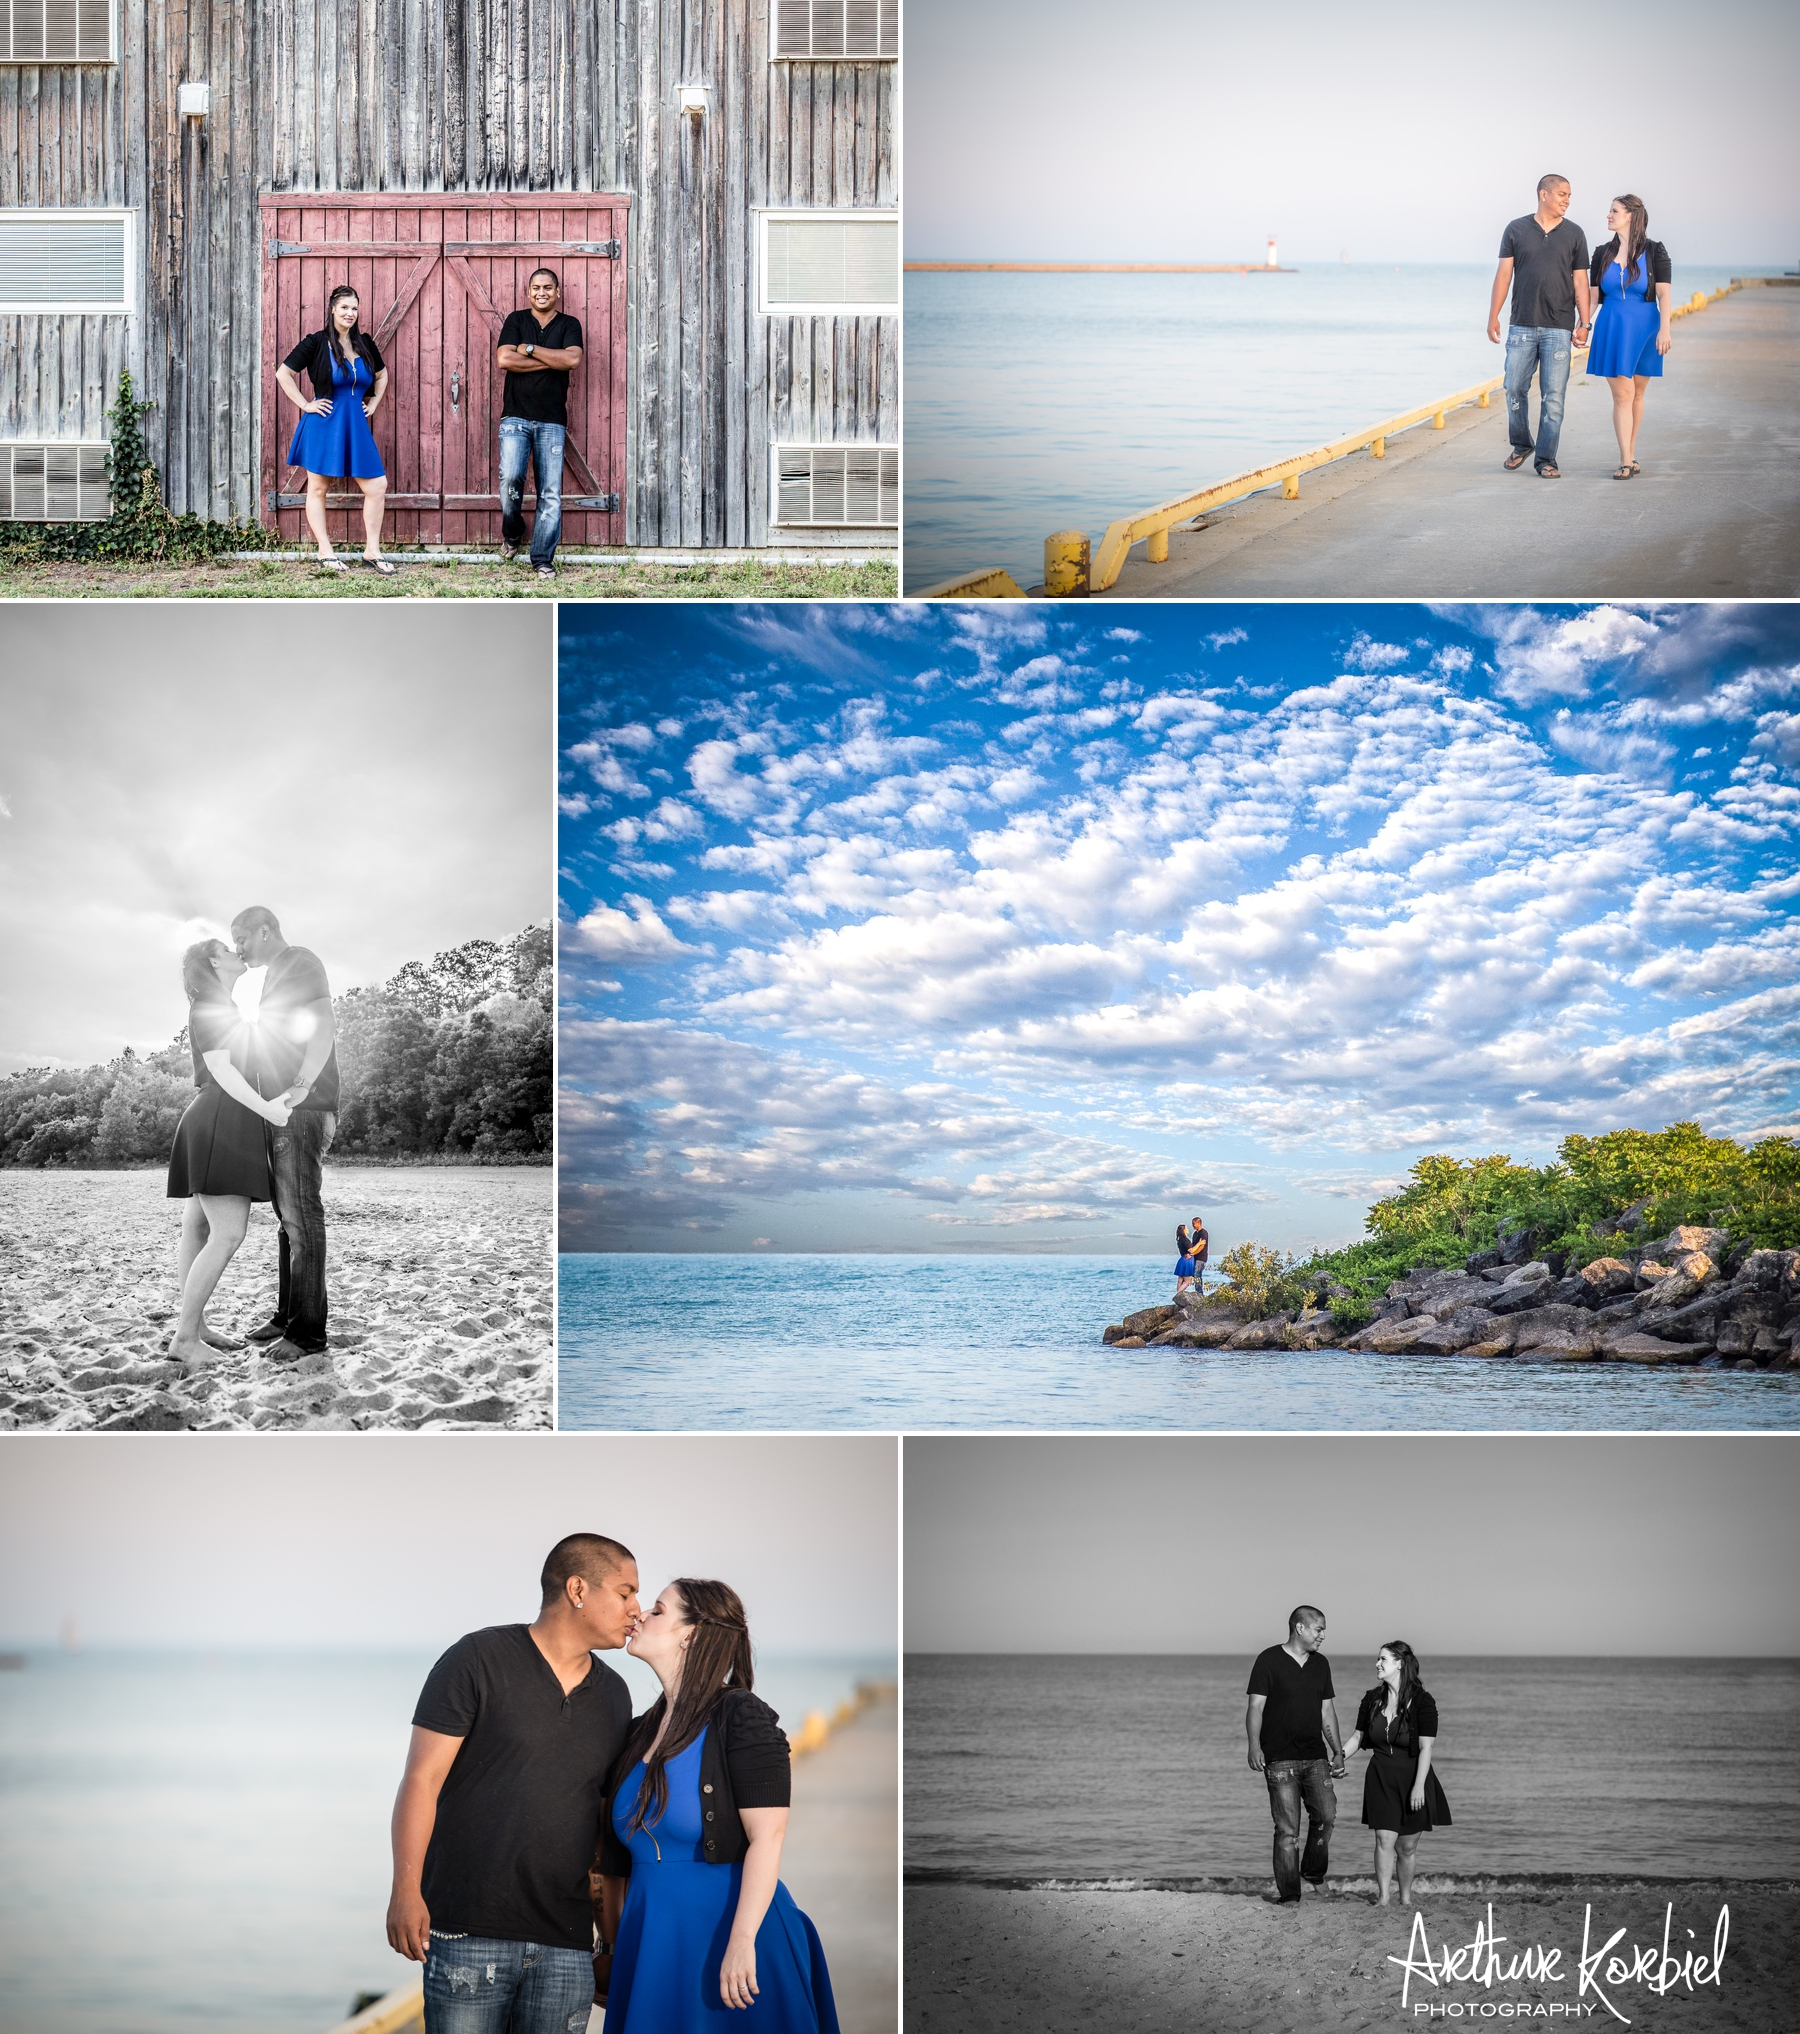 Arthur Korbiel Photography - Blog - Engagement Session - Port Stanley_002.jpg